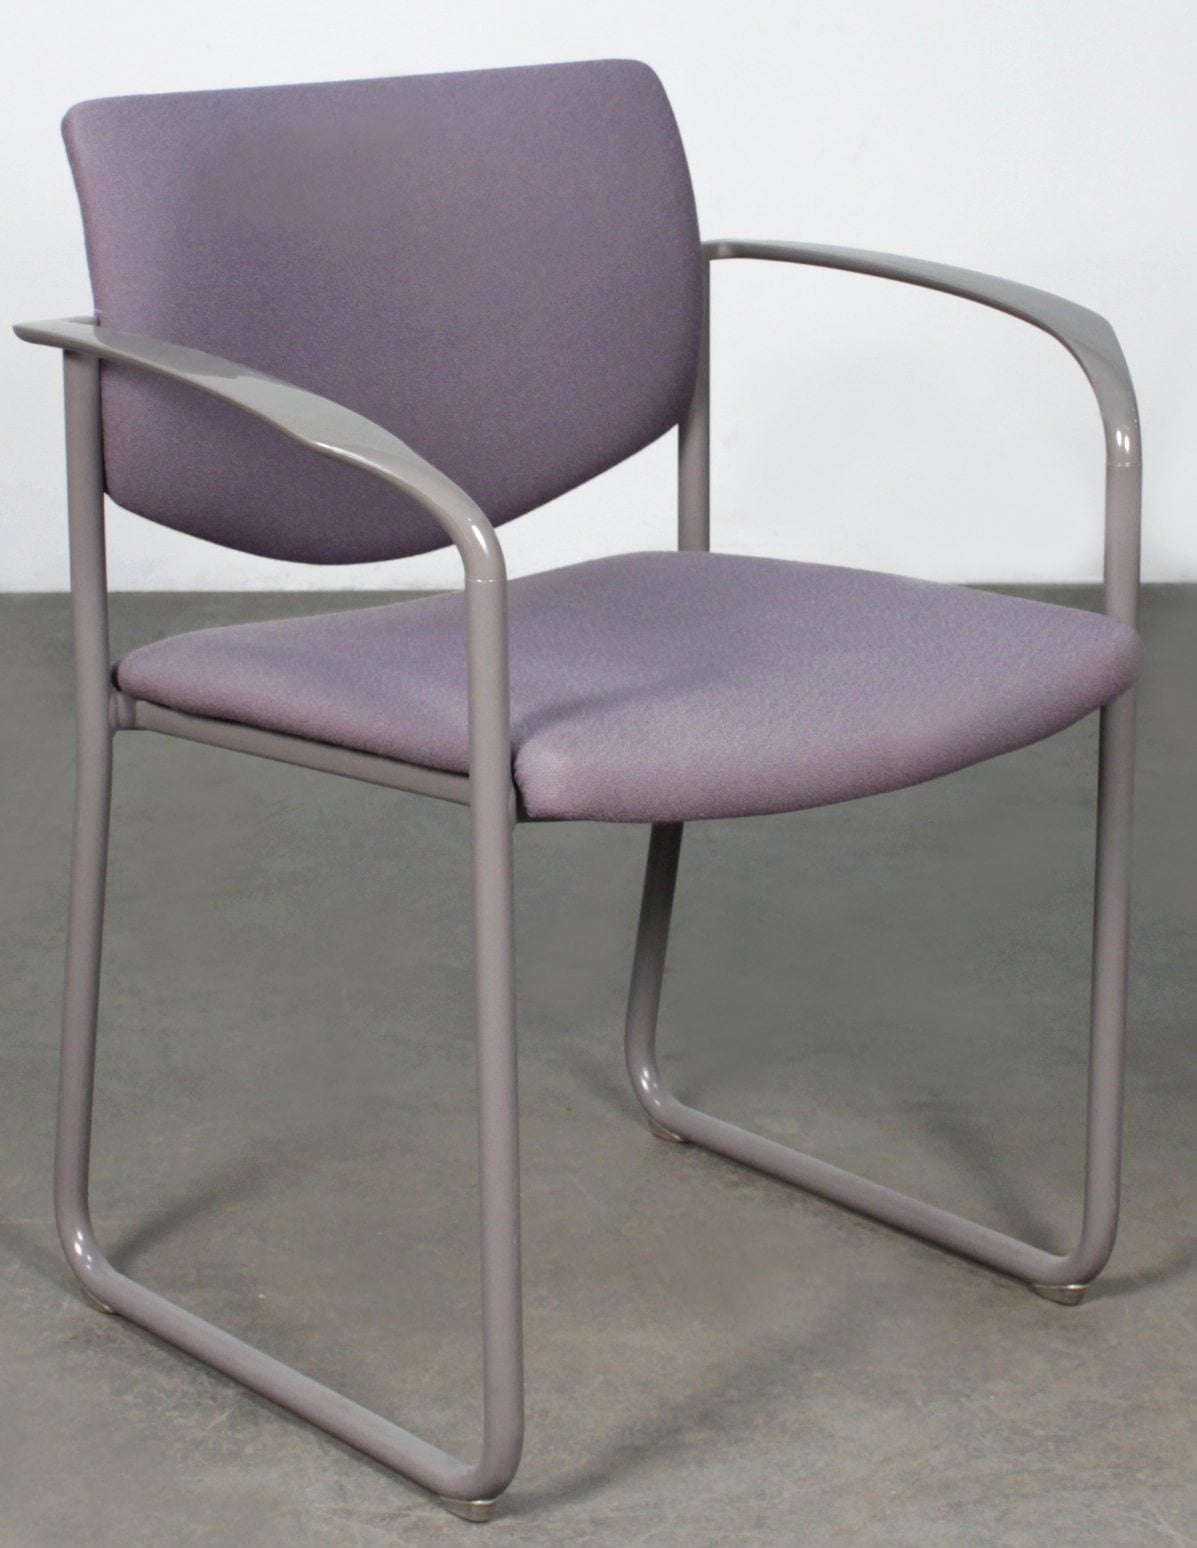 Lavender Chair Steelcase Player 475 Used Guest Chair Lavender National